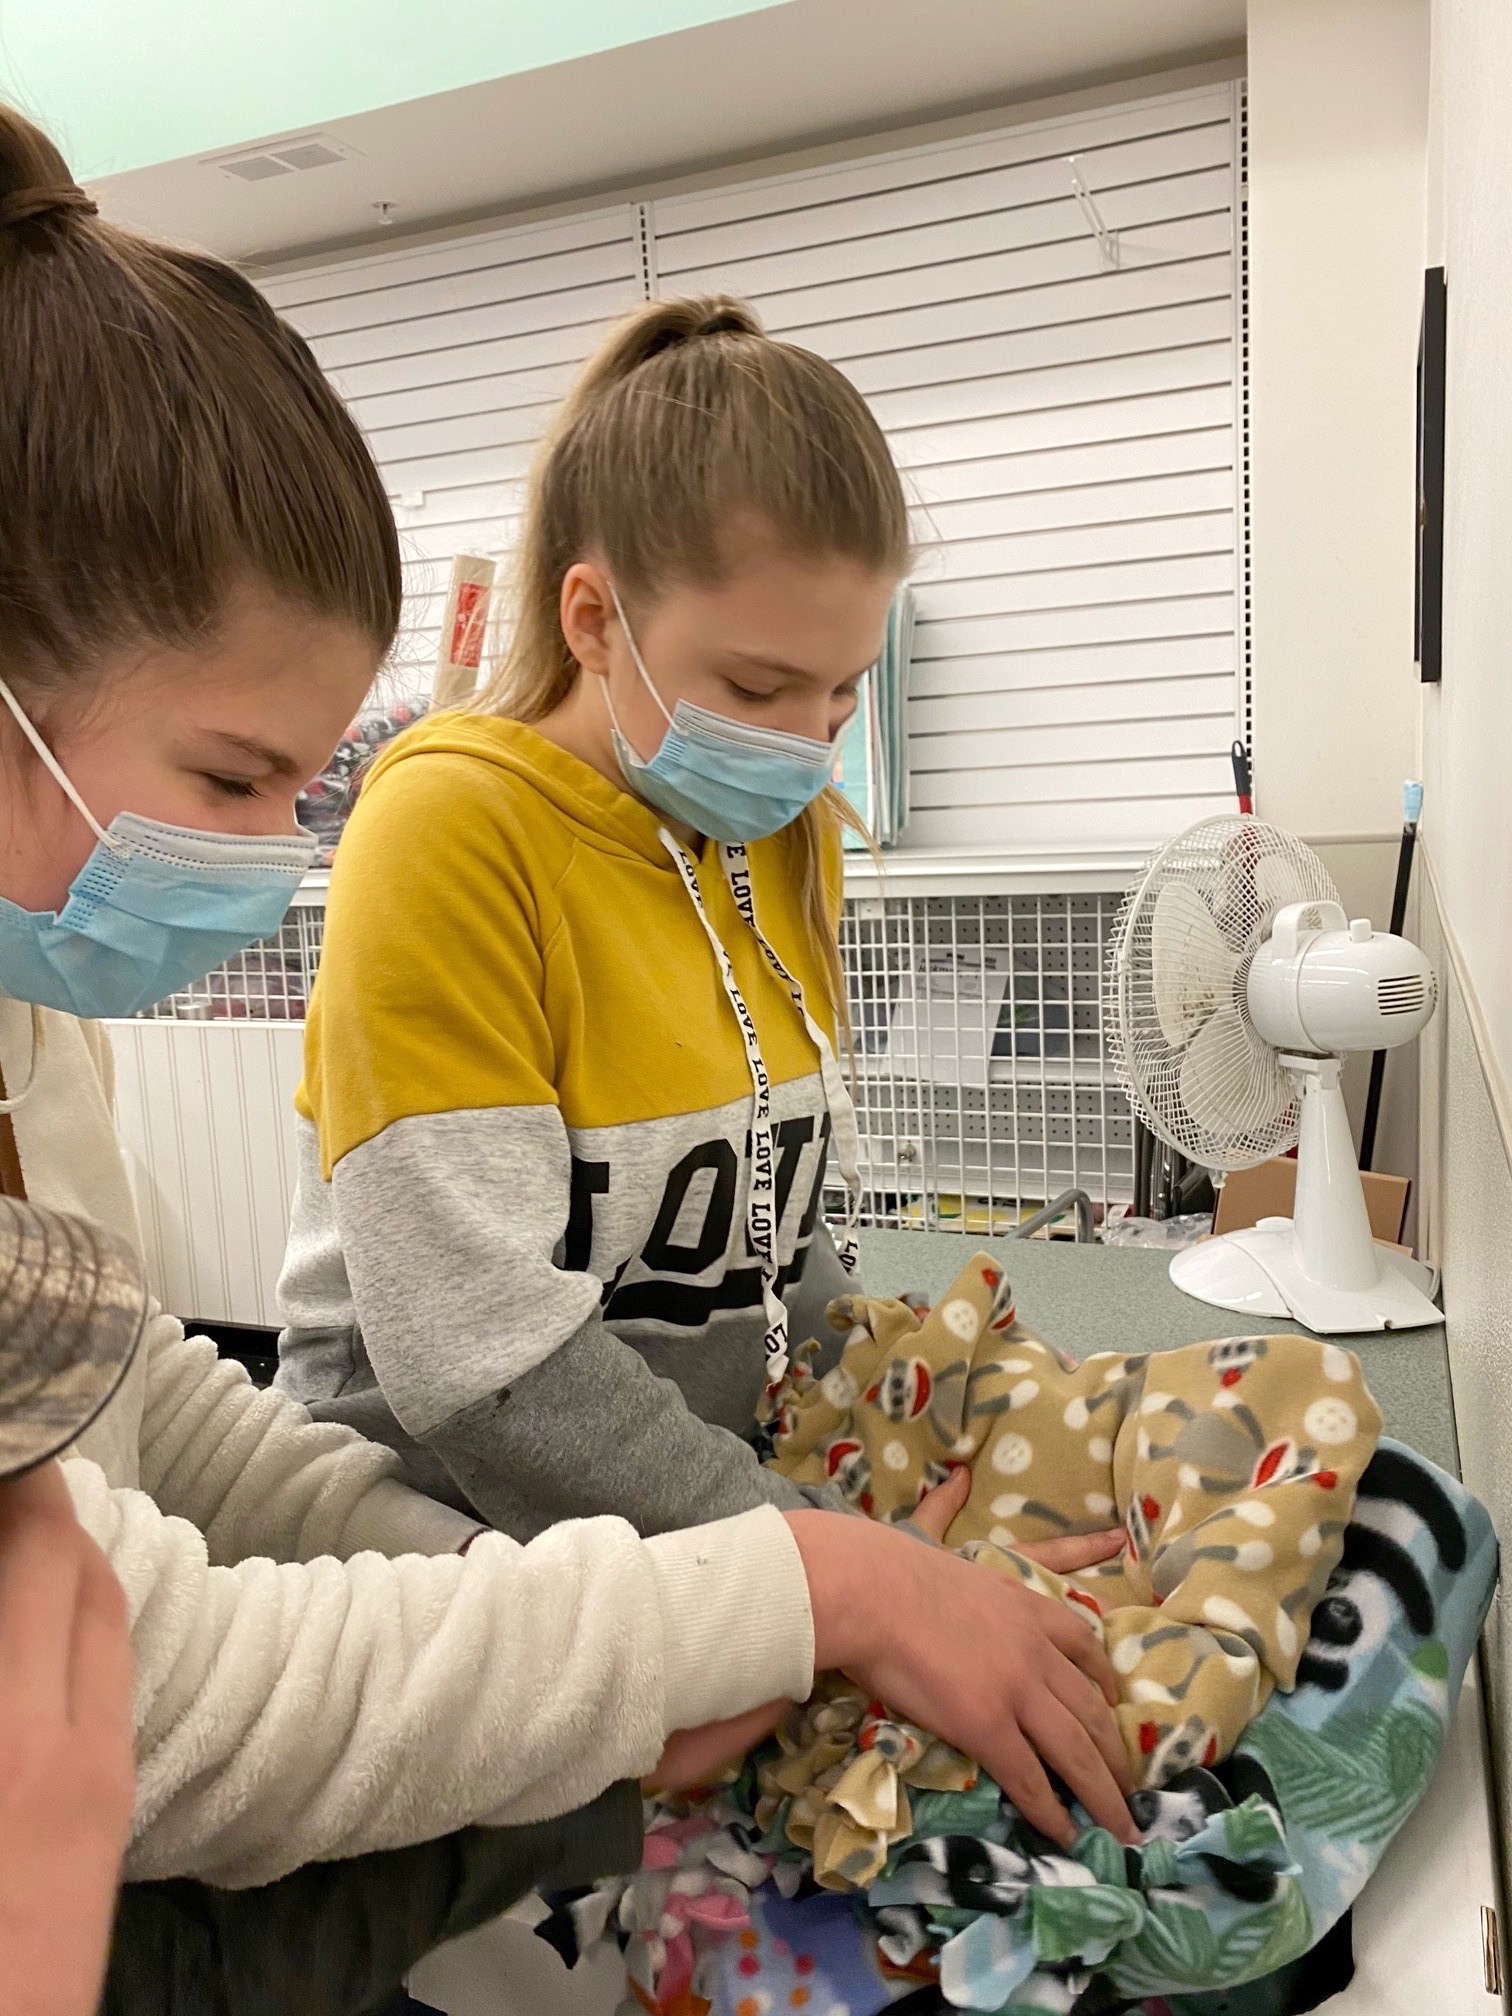 Boone County 4-H'ers Chloe Beal, left, and sister Zoe working on blankets for Project Linus.